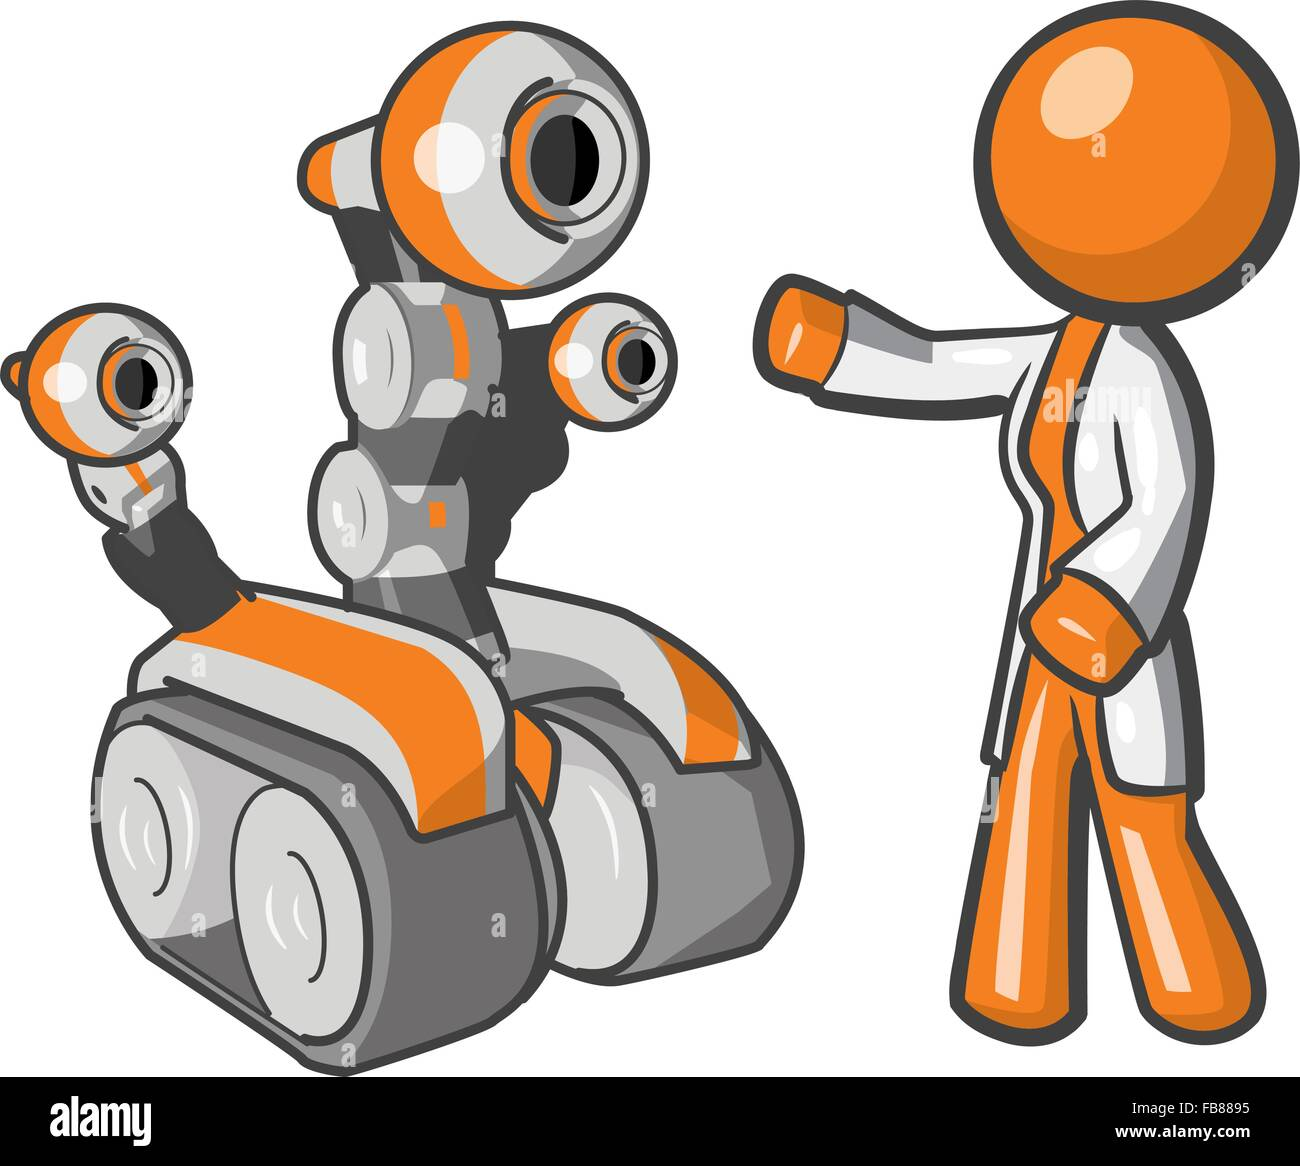 Robotics Engineer Cut Out Stock Images Pictures Alamy